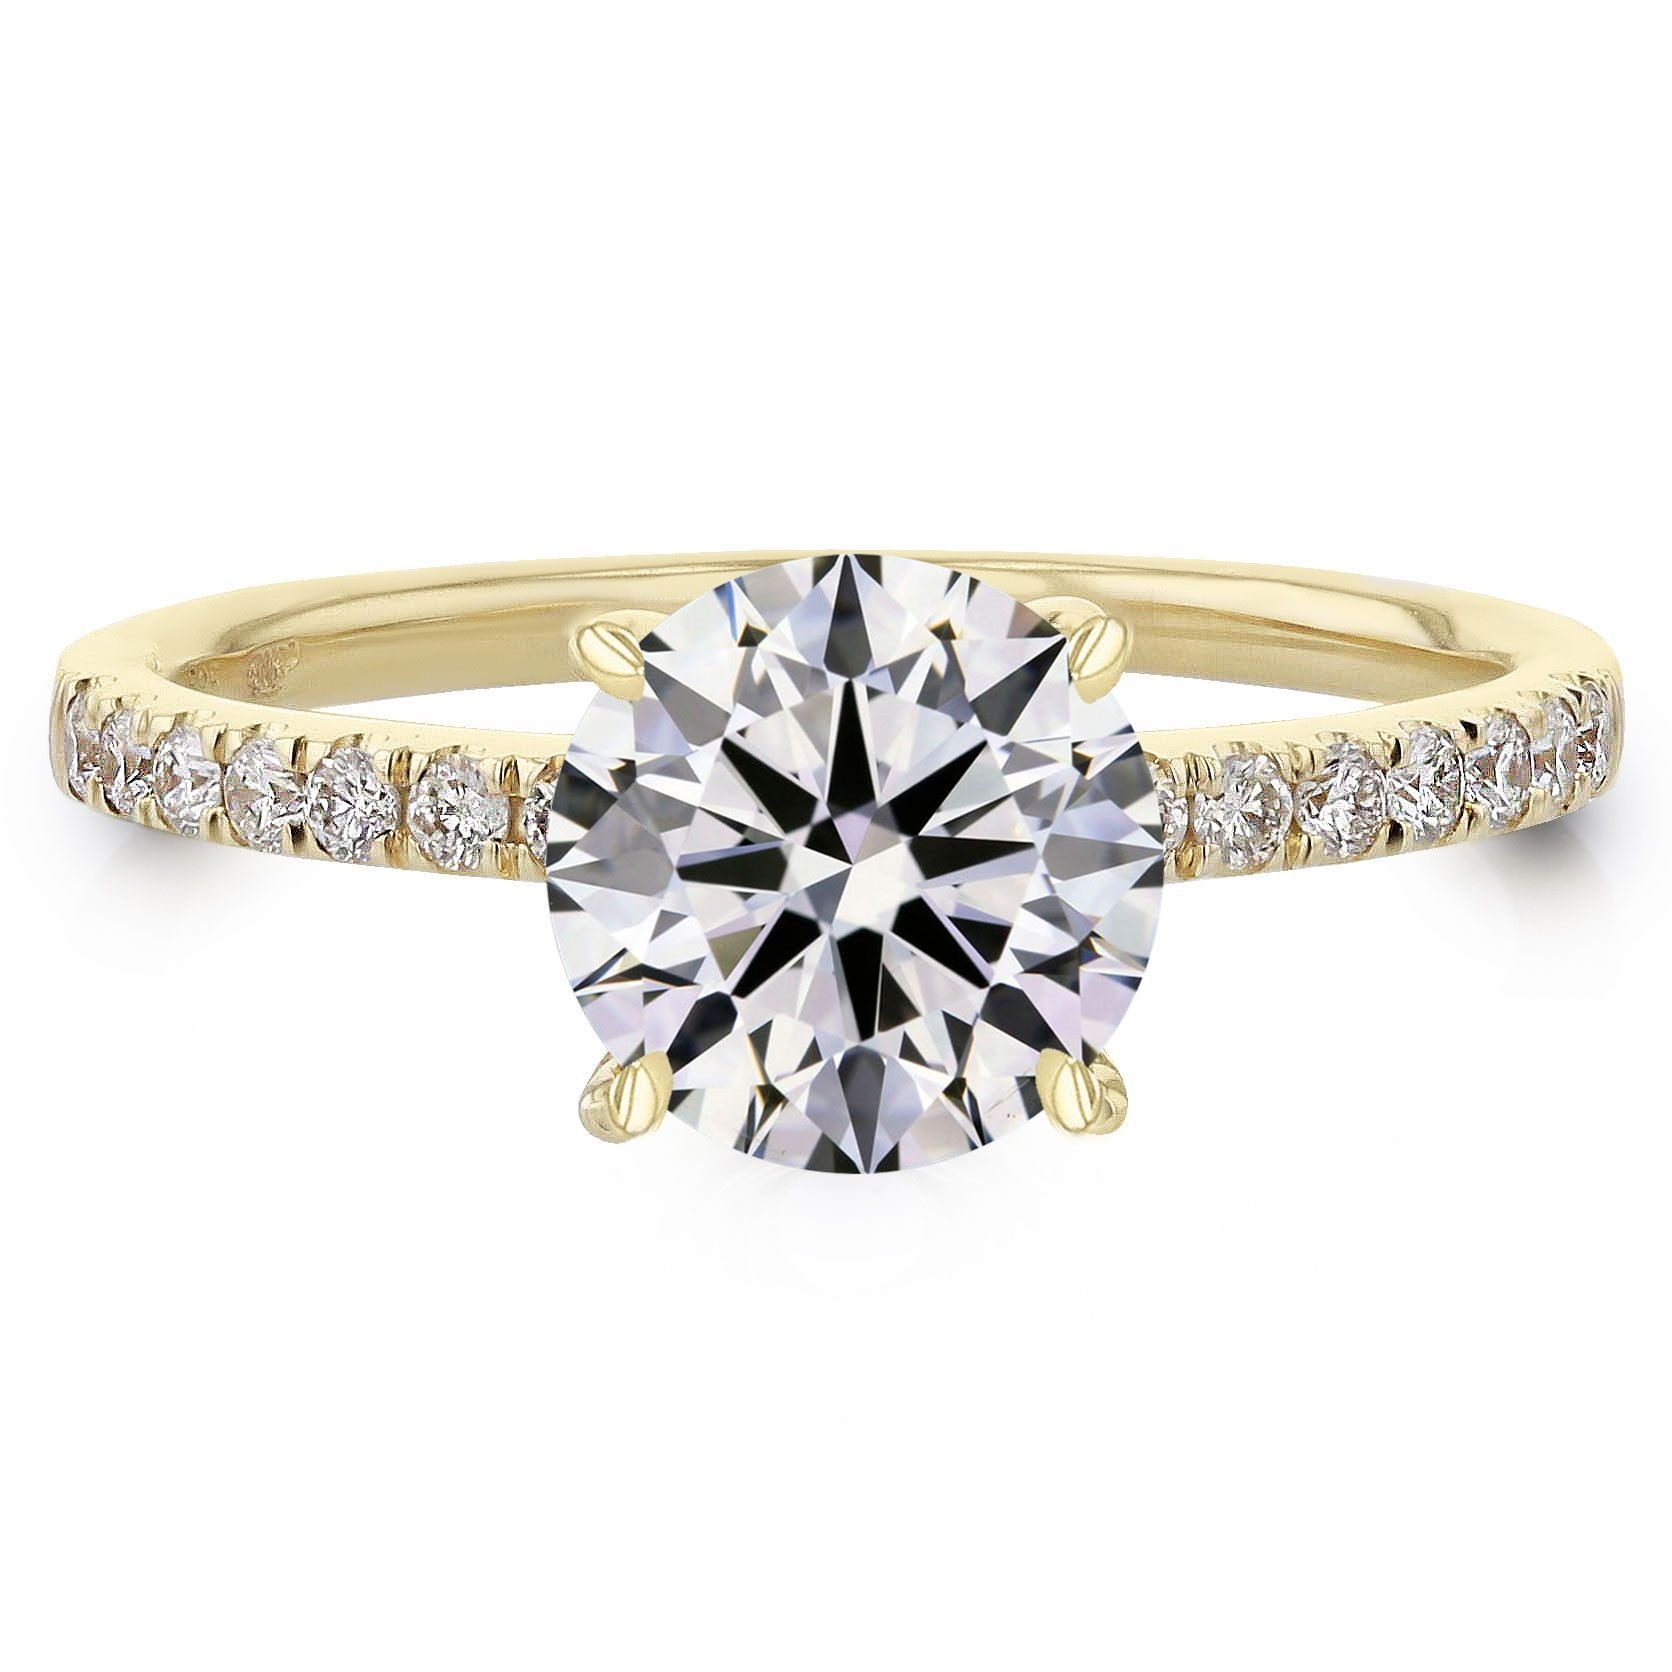 Our Classic Micro Pave Engagement Ring The Juliette Is For The